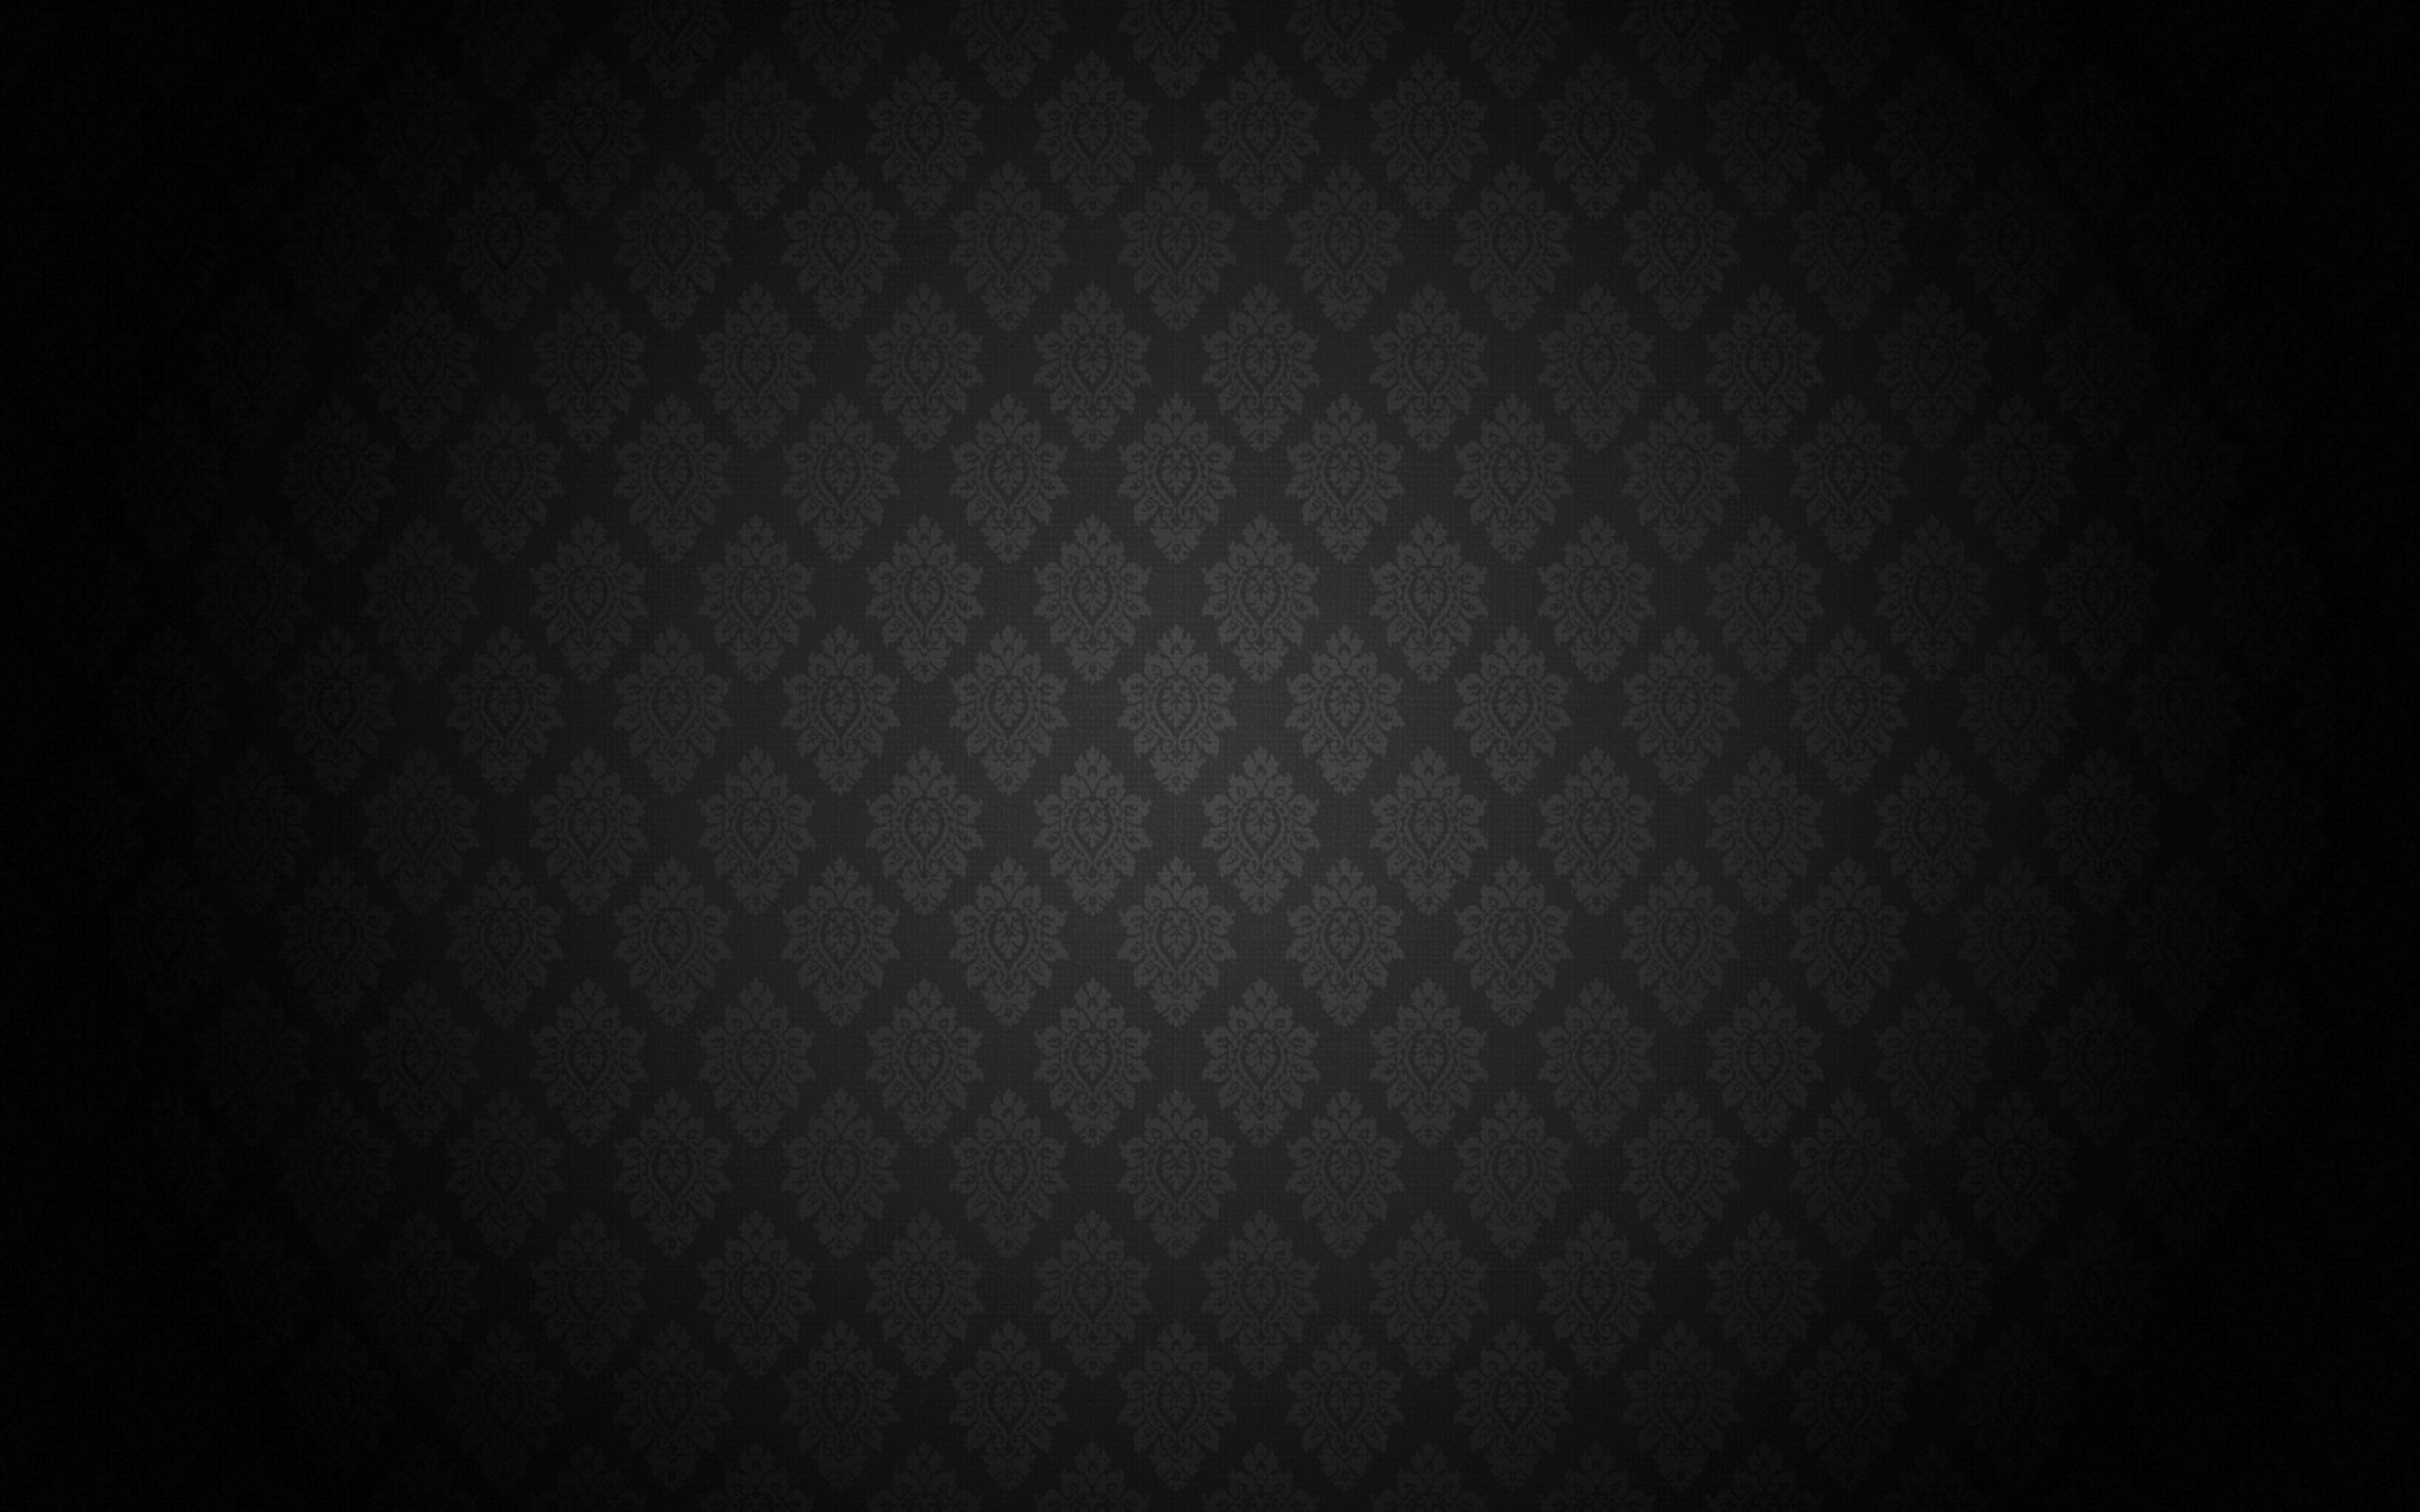 Black and White Pattern Background HD wallpaper background 2560x1600